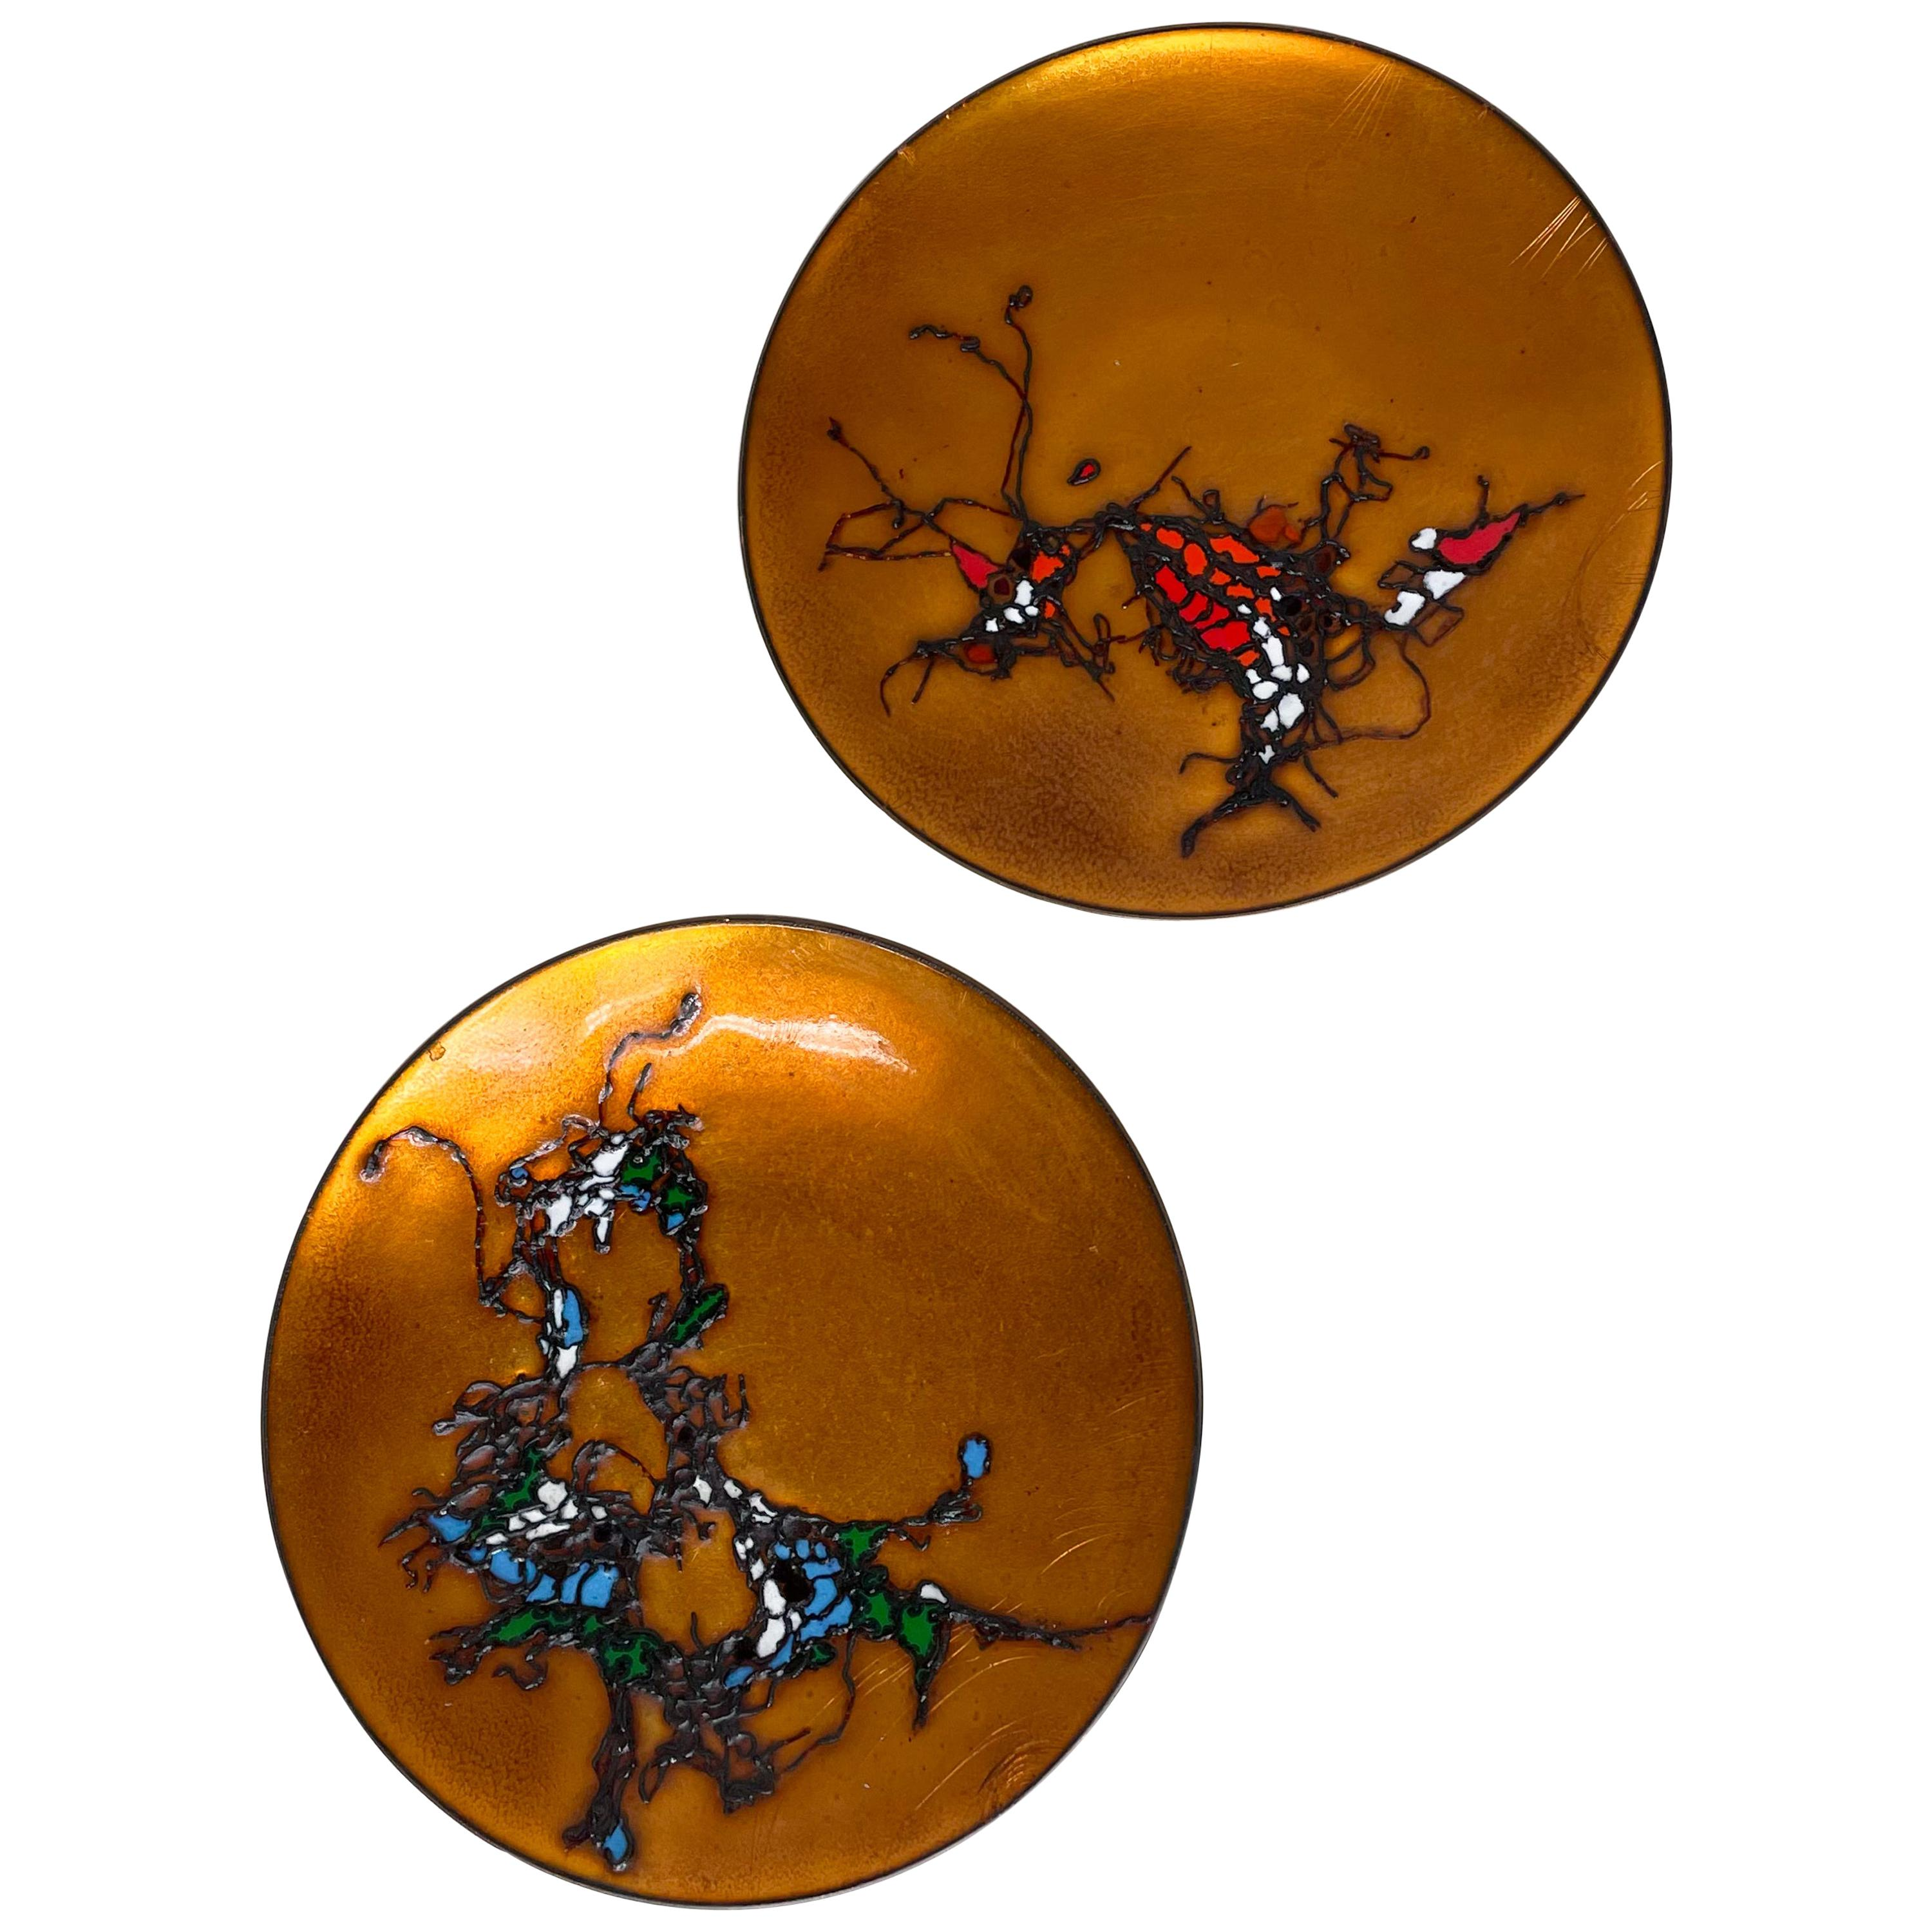 Enamel on Copper (2) Petite Plates Abstract Design by artist Margot Dohan 1960s